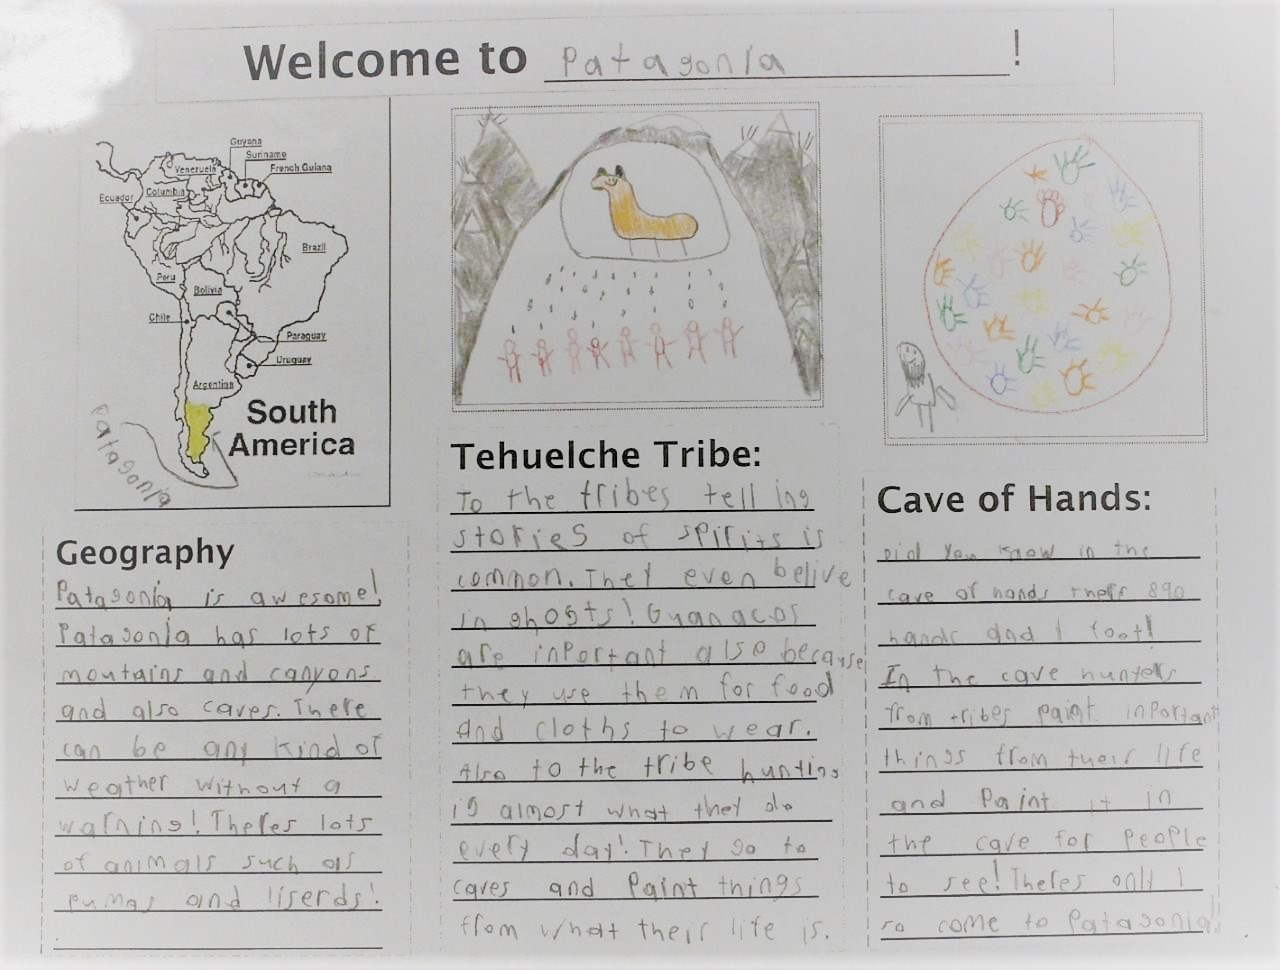 "In Annie's brochure, she discussed the mountains and canyons, the weather, the Cave of Hands, and the Tehuelche, writing, ""To the tribes, telling stories of spirits is common…They go to the caves and paint things from what their life is"""